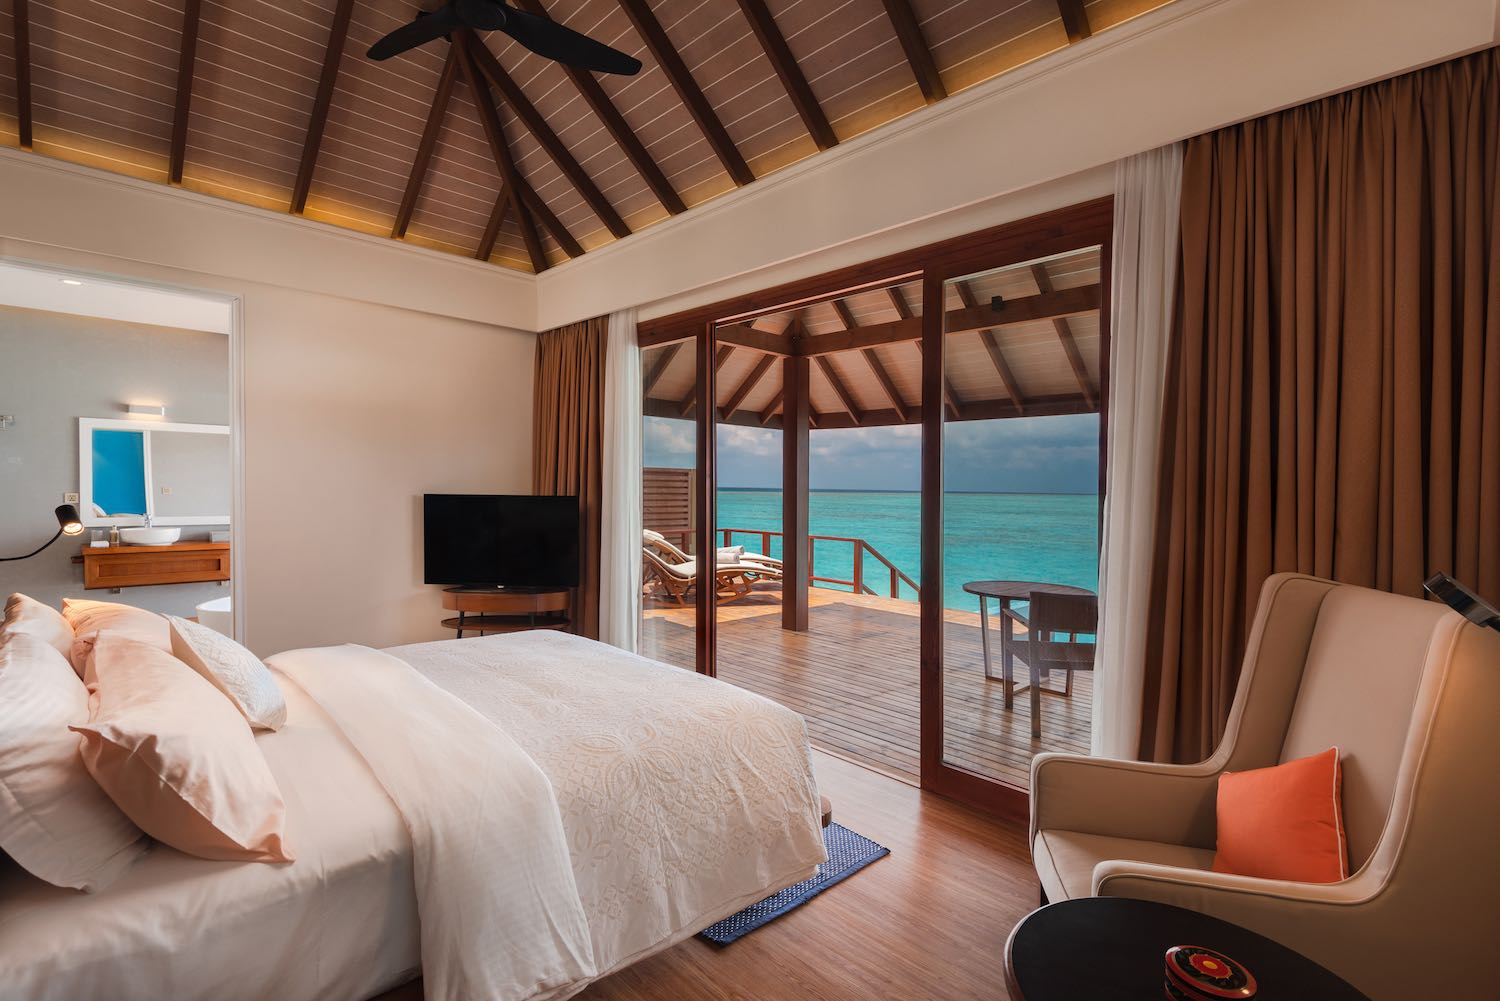 maldives-varu-by-atmosphere-water-villa-with-pool-bedroom-view-holiday-honeymoon-vacation-invite-to-paradise.jpg